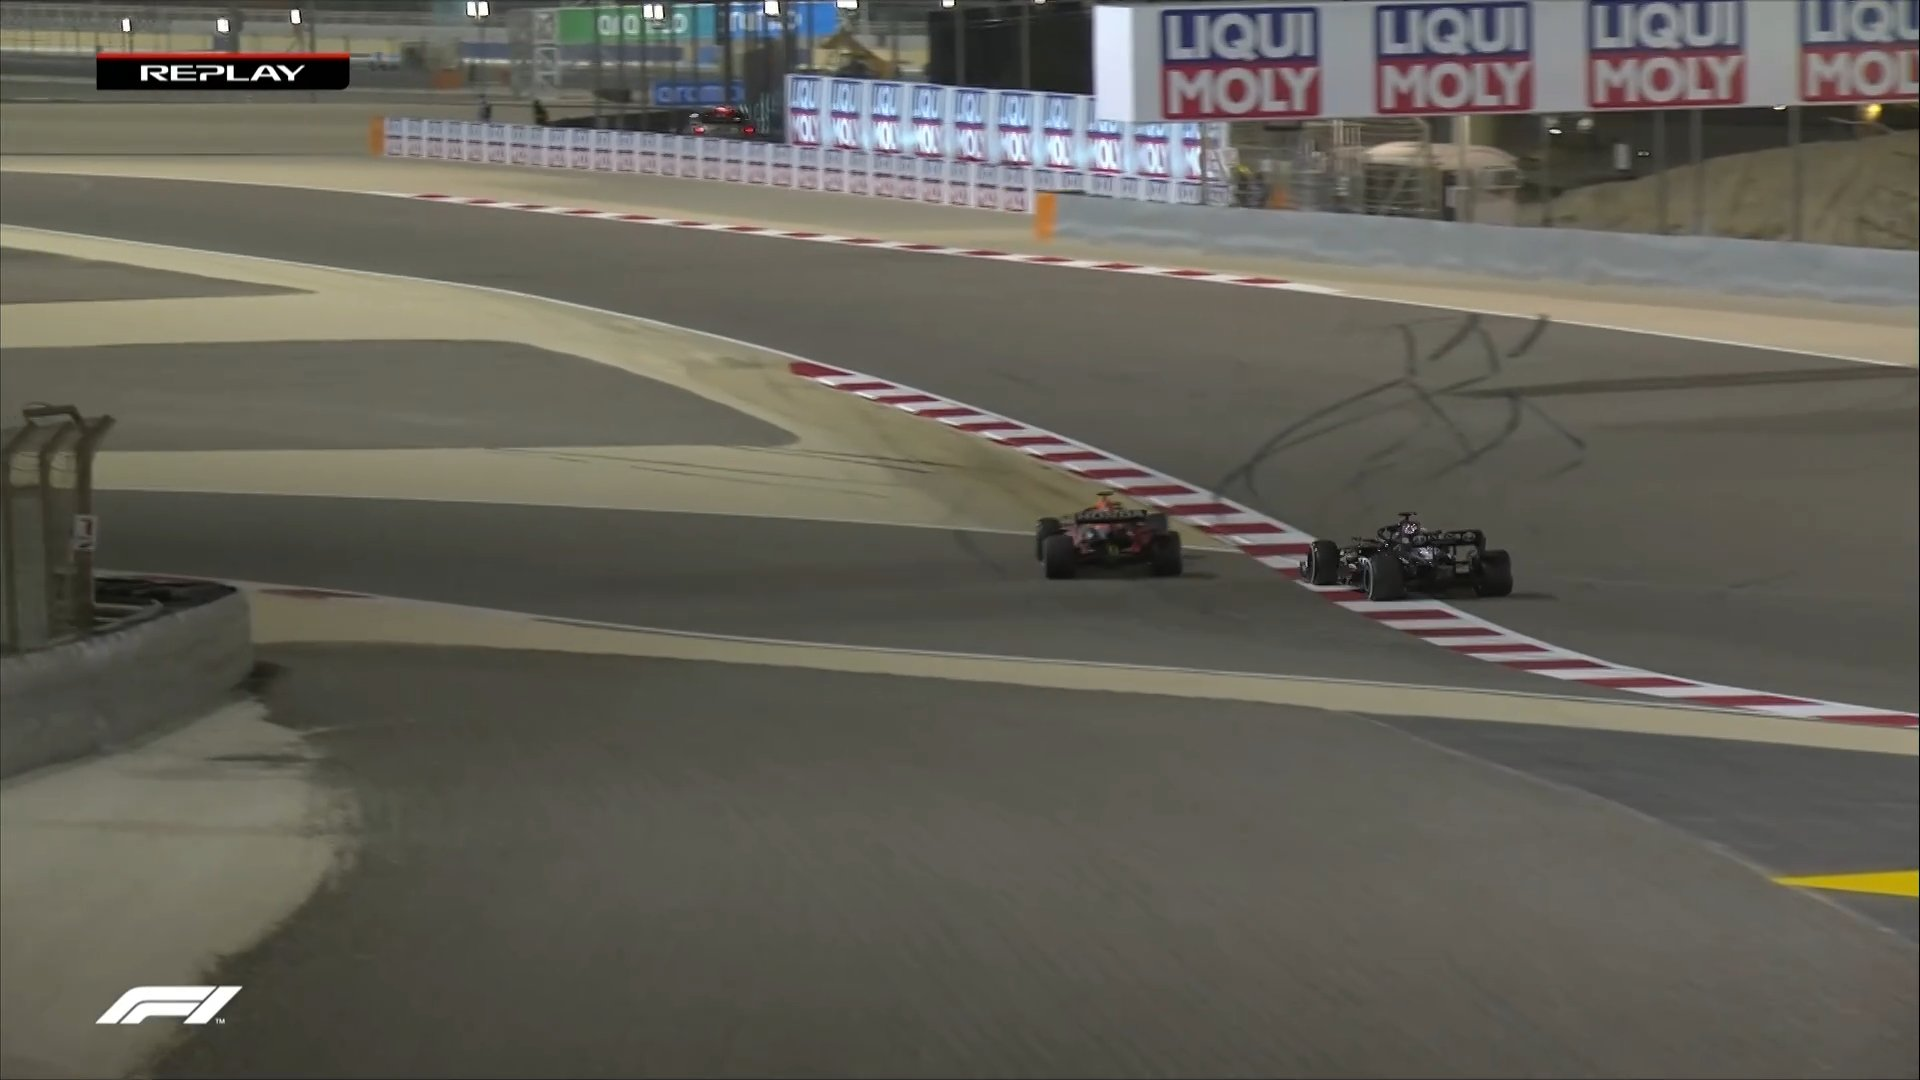 Twice Verstappen crossed the curb of the Shakhir racetrack